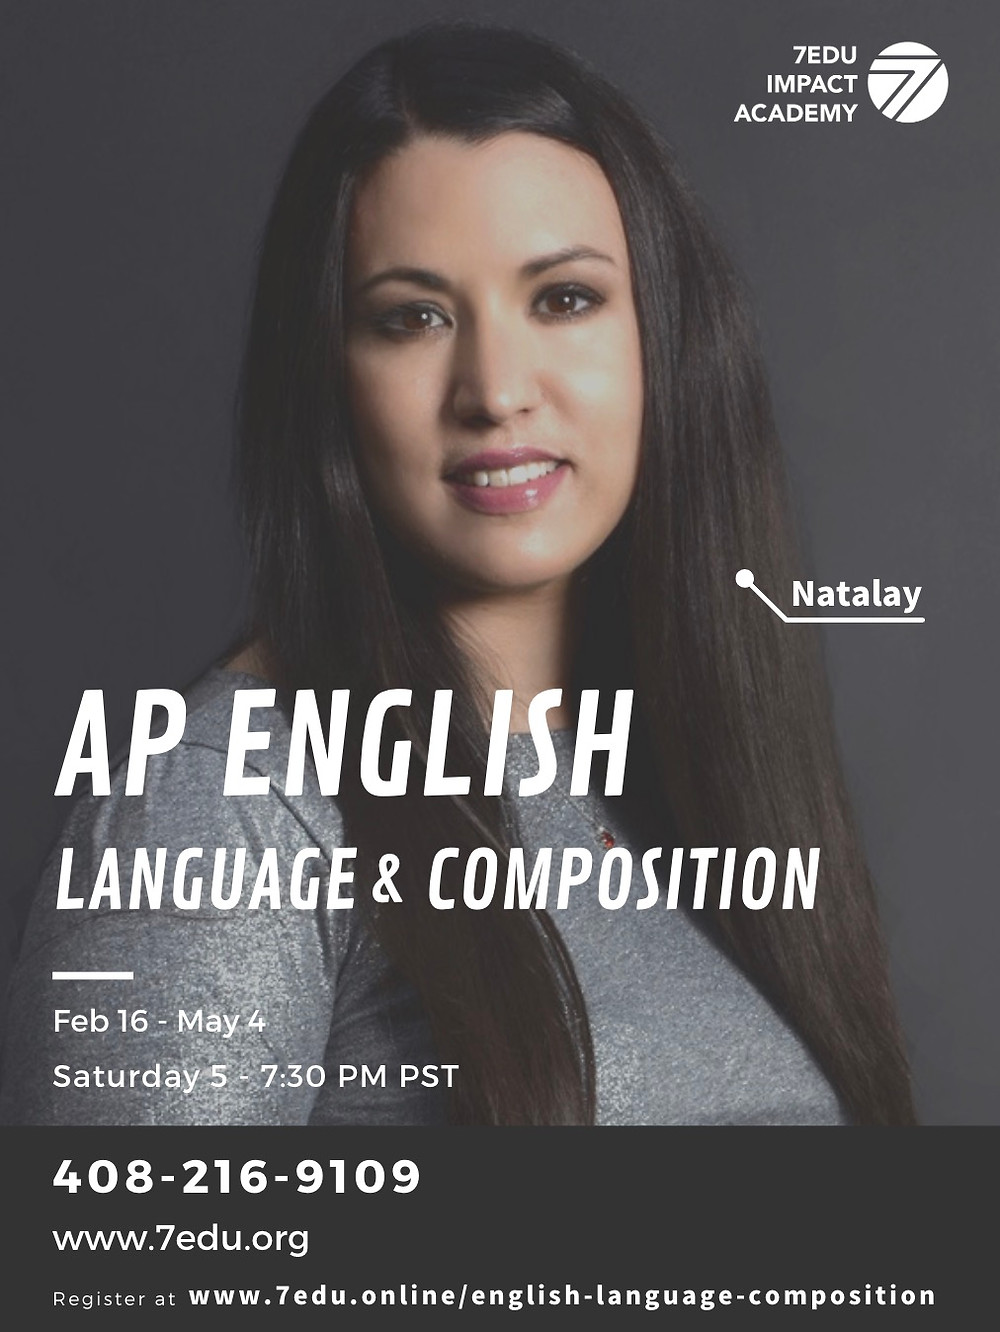 "<img src=""natalay.jpg"" alt=""natalay goldstein teacher of 7edu information about upcoming ap english language and composition course"">"